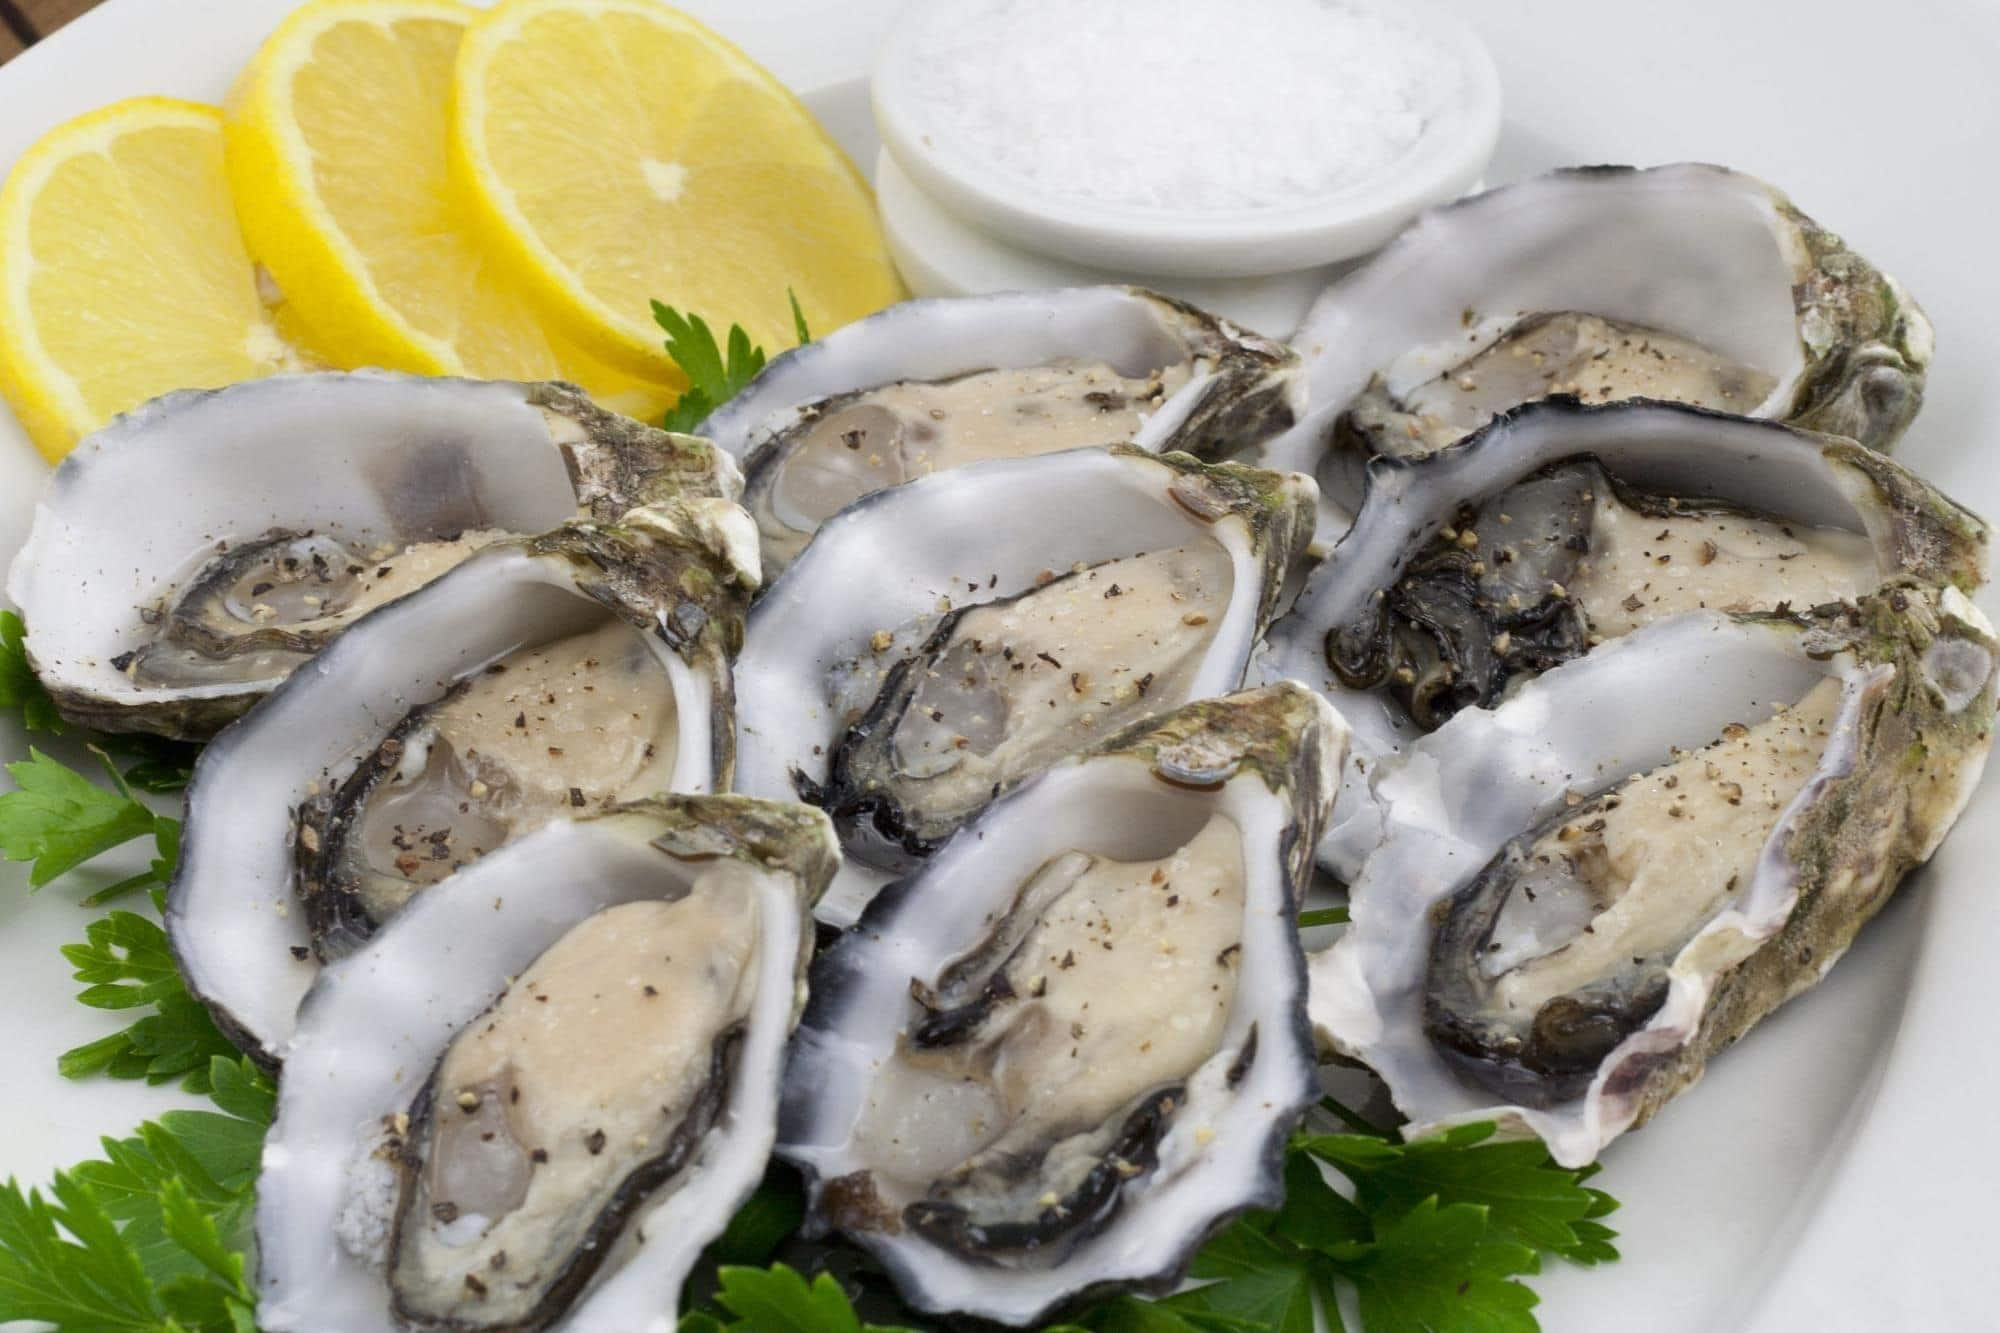 oyster dream meaning, dream about oyster, oyster dream interpretation, seeing in a dream oyster